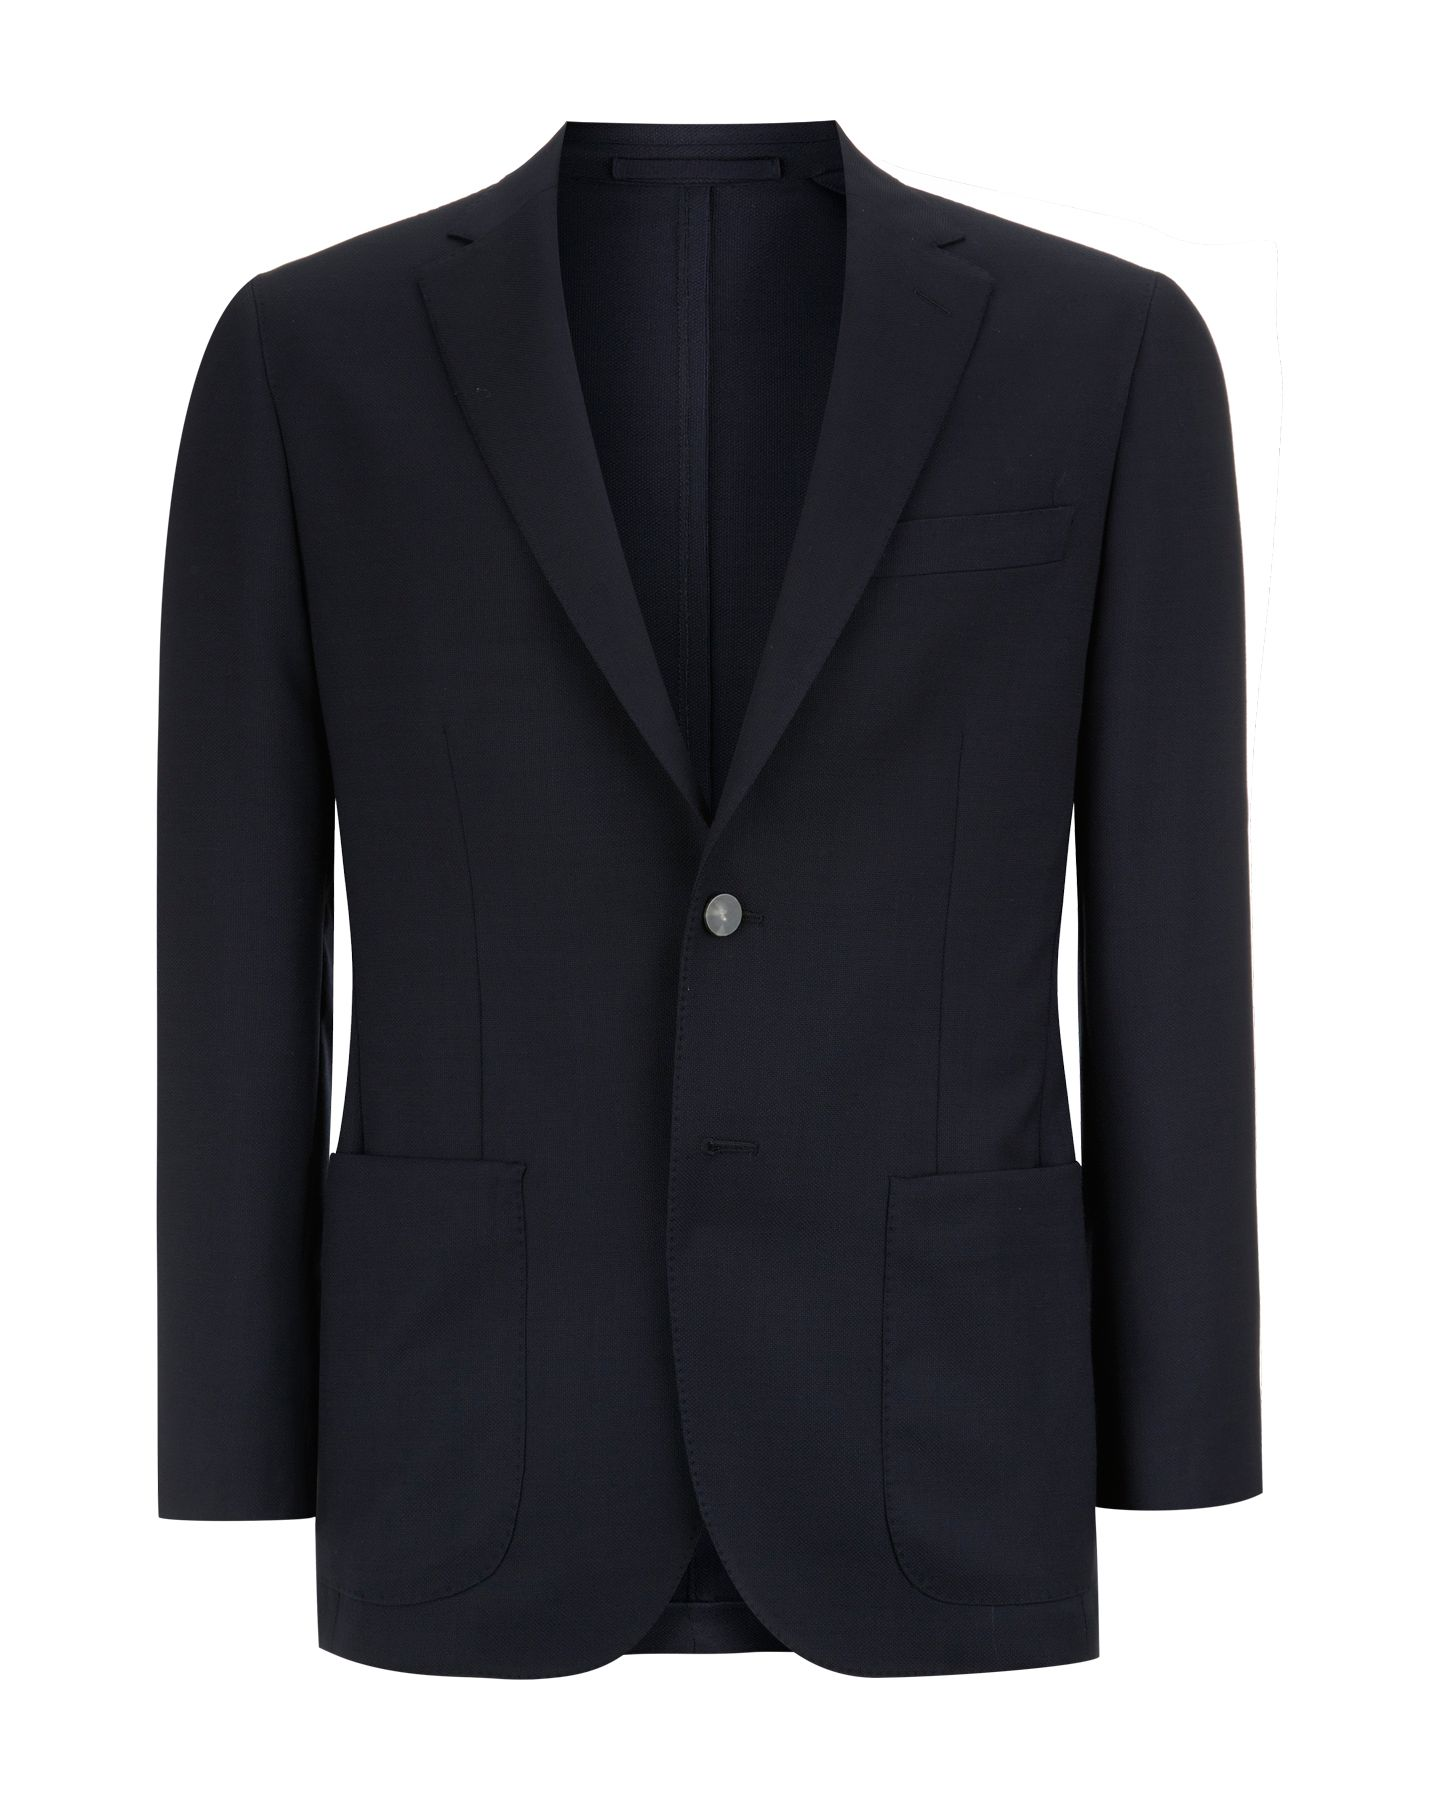 Waterhouse formal single breasted blazer